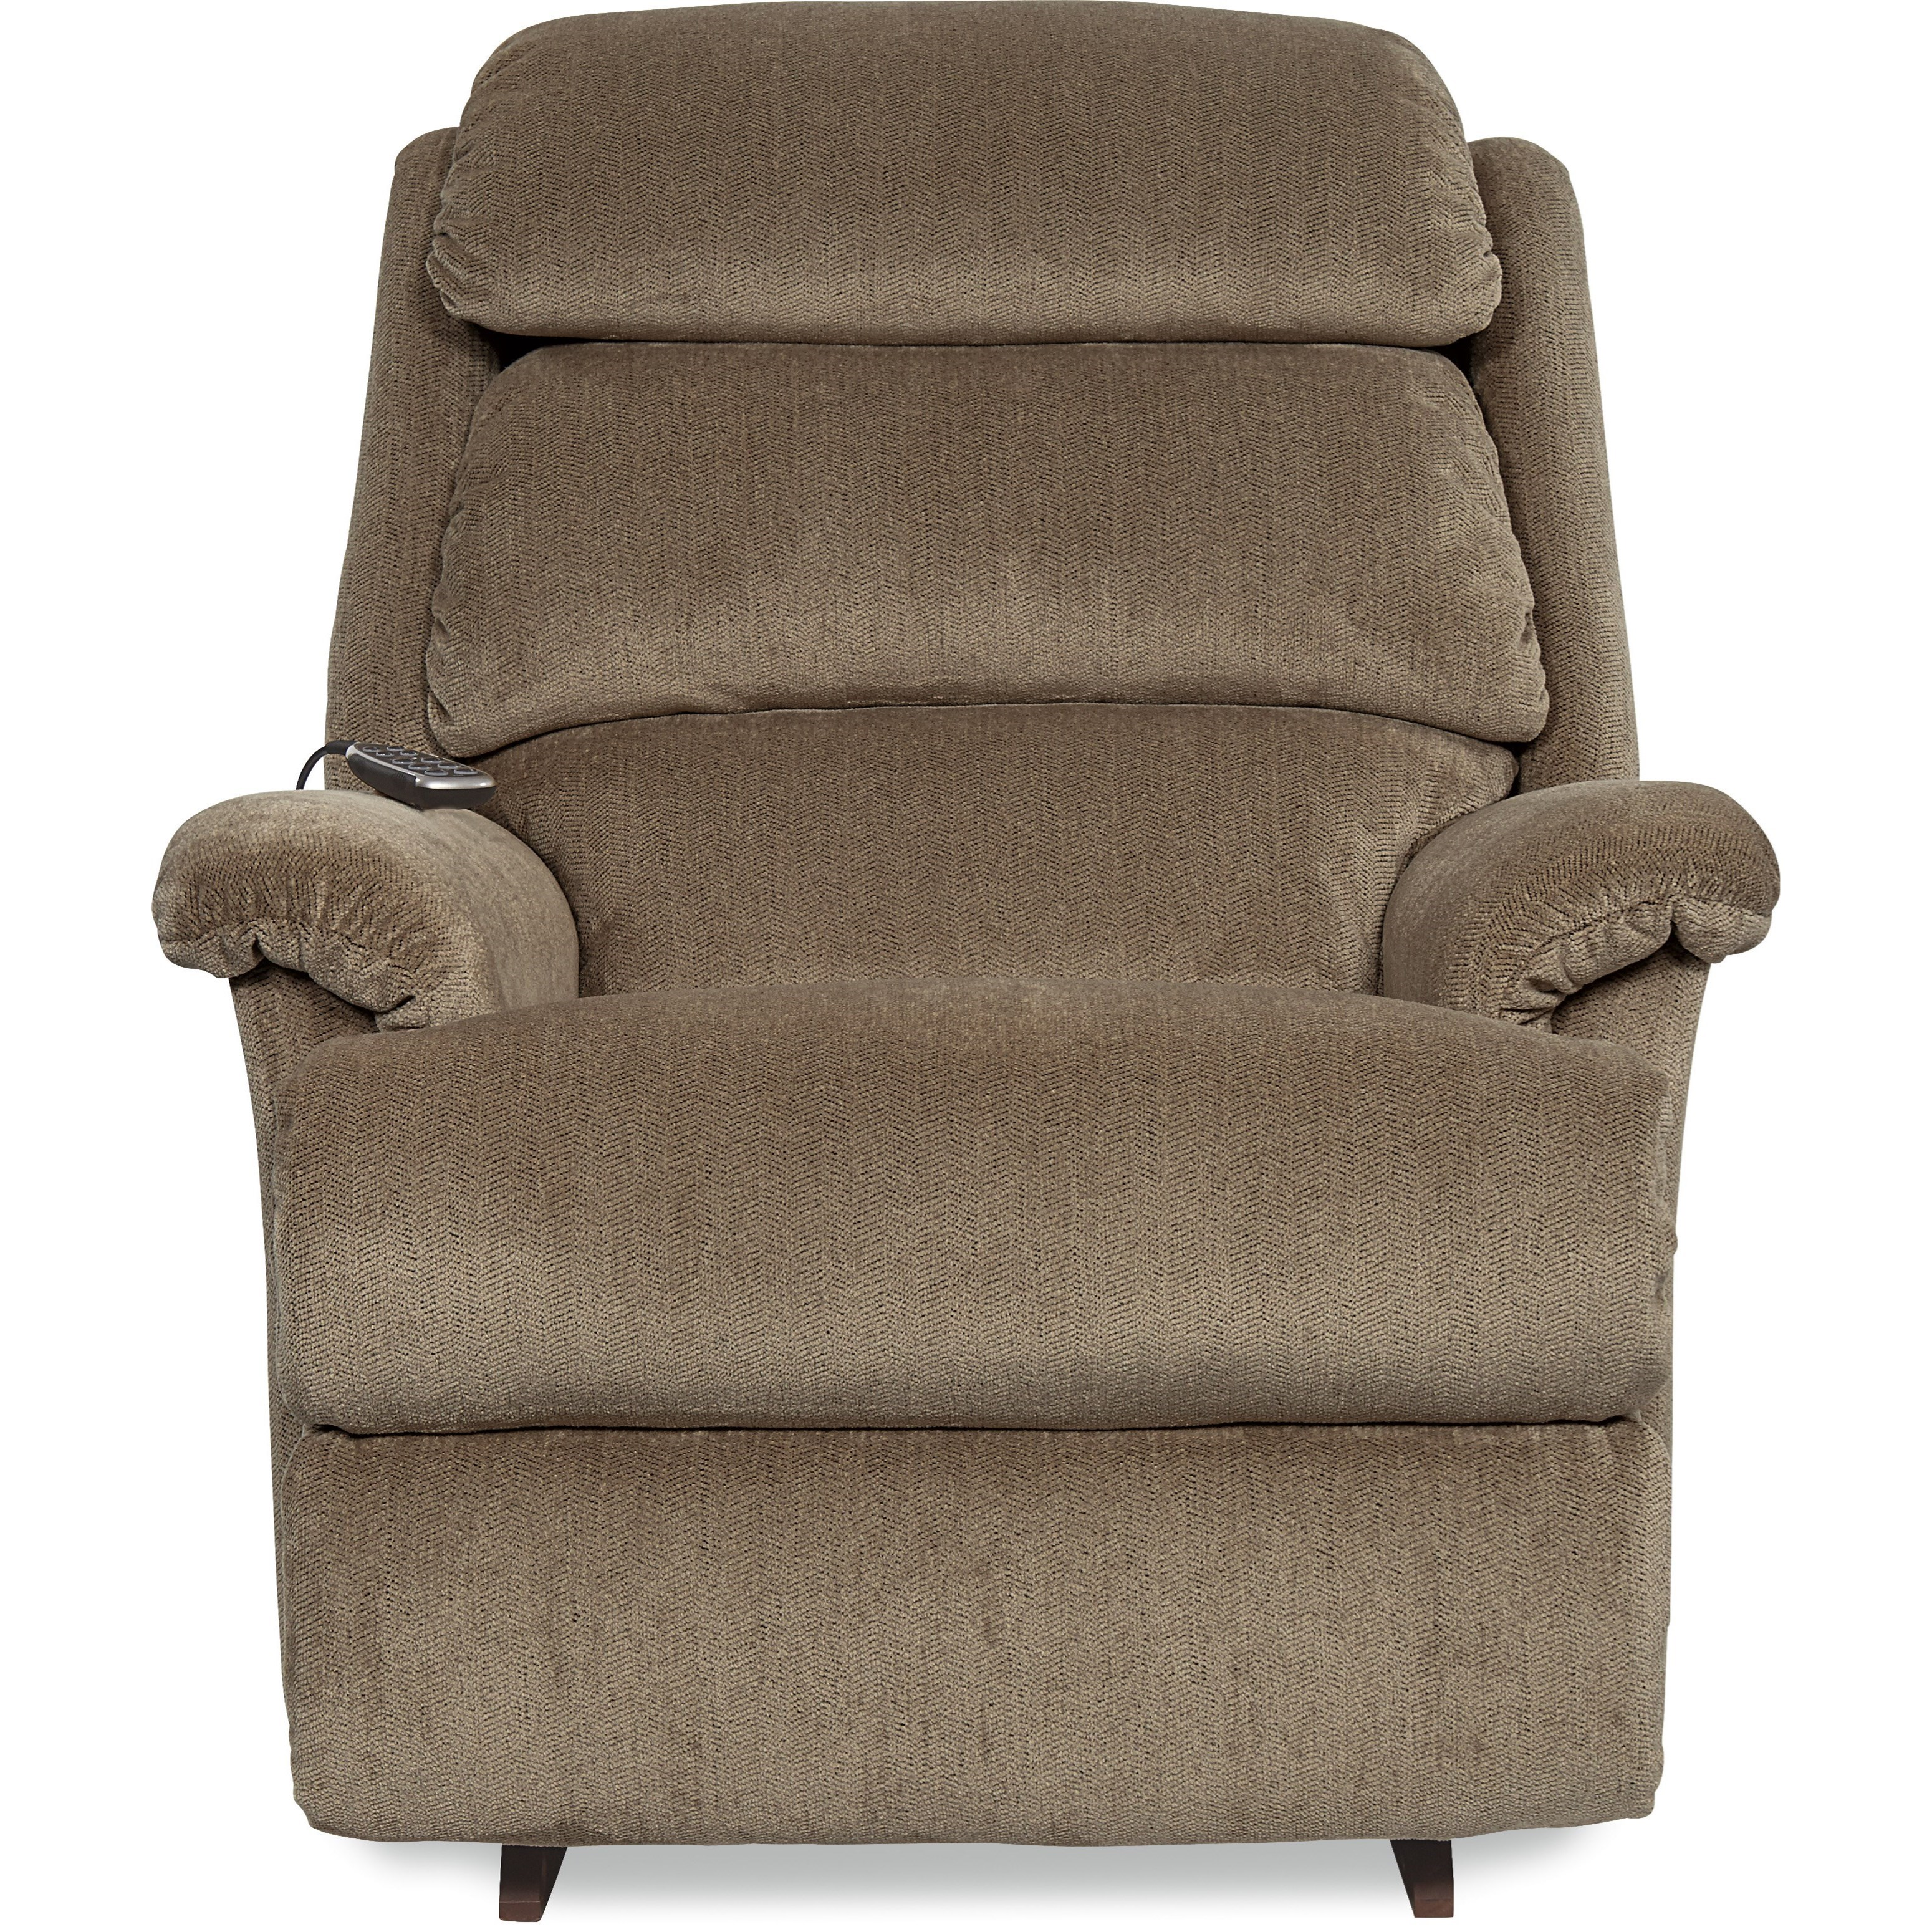 Astor Power Rocking Recliner w/ Headrest by La-Z-Boy at Houston's Yuma Furniture